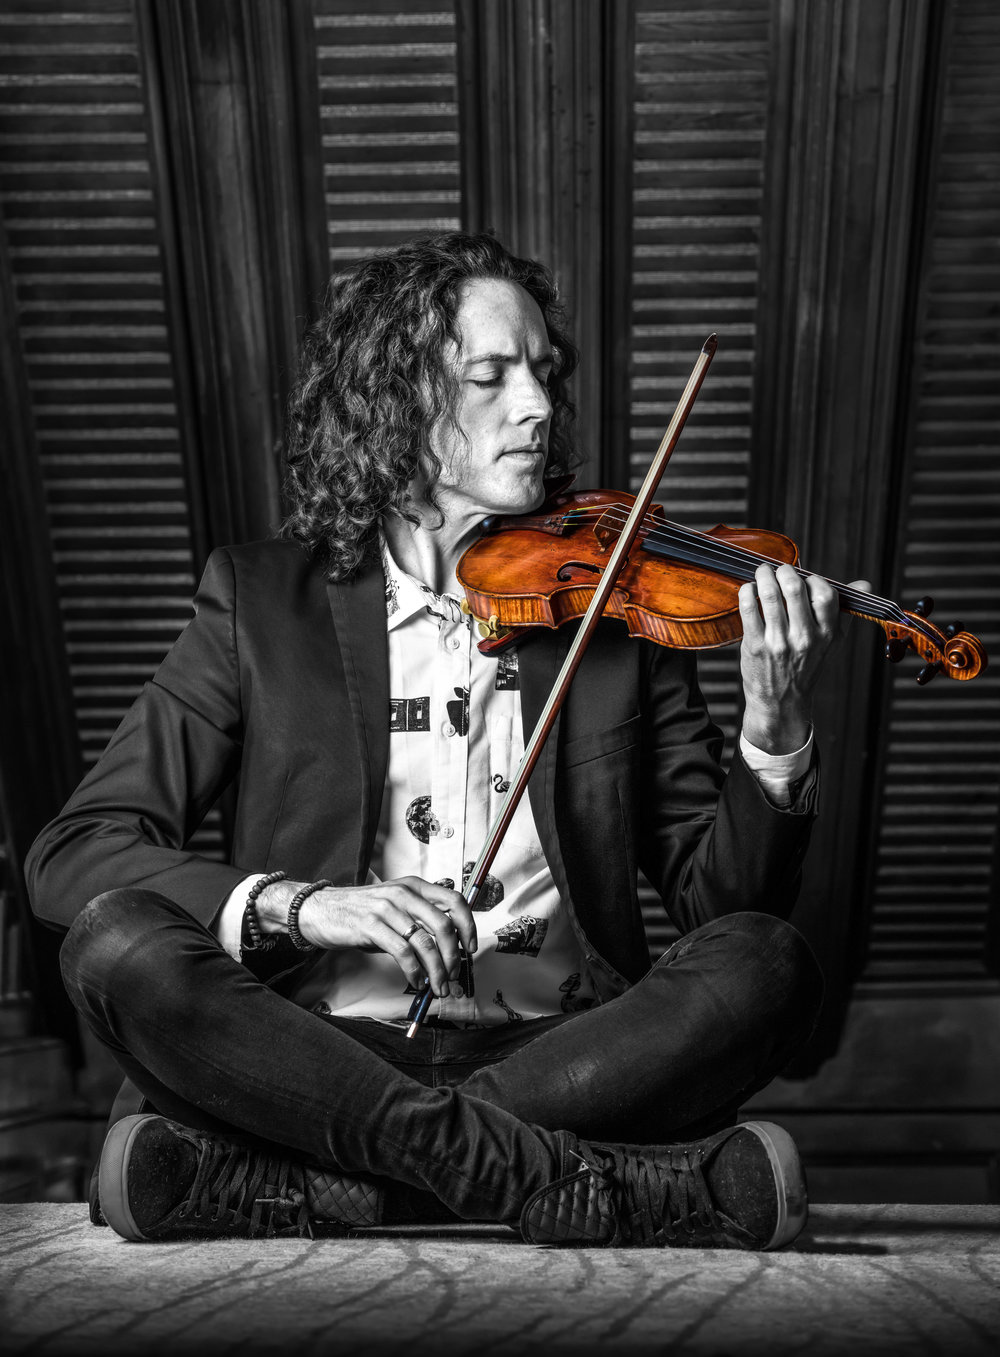 Tim Fain, World Renowned Violinist and Composer